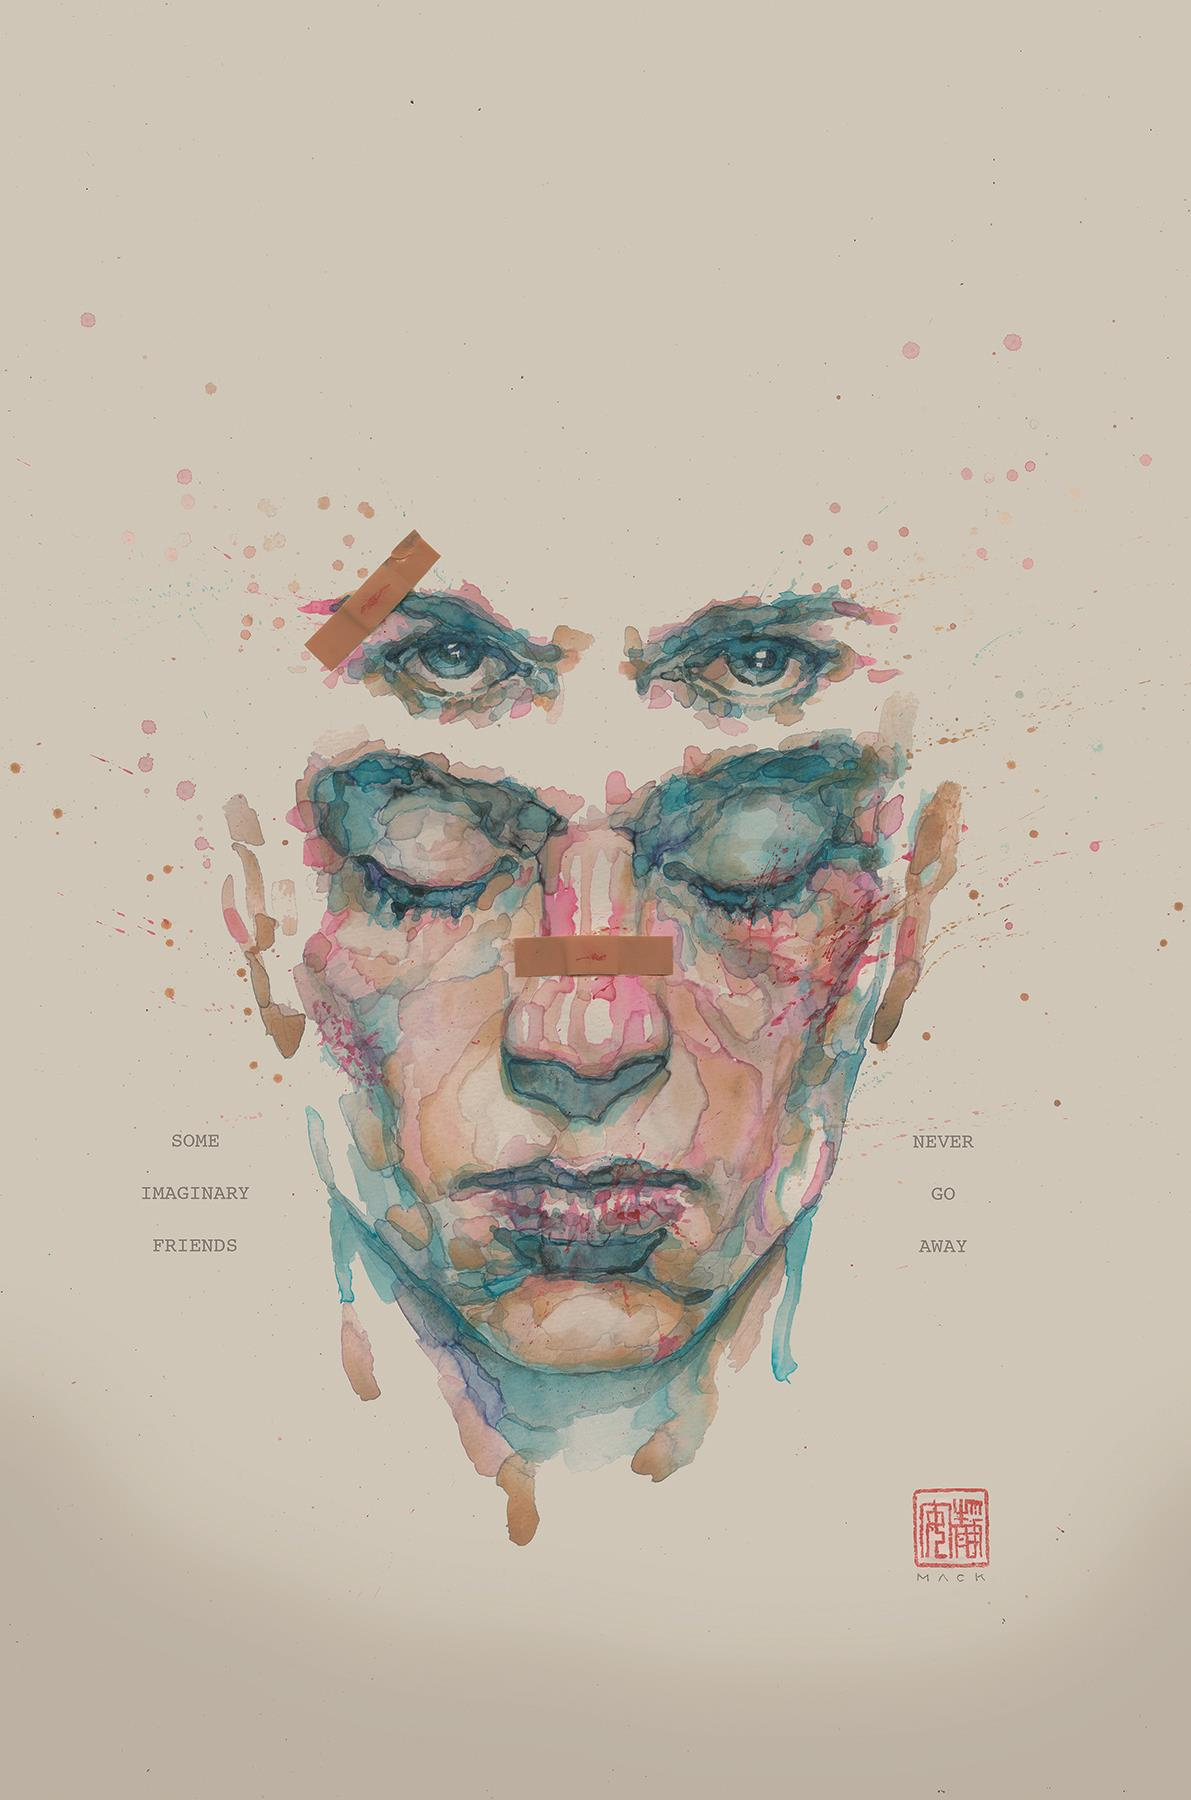 La copertinad i Fight Club 2 disegnata da David Mack